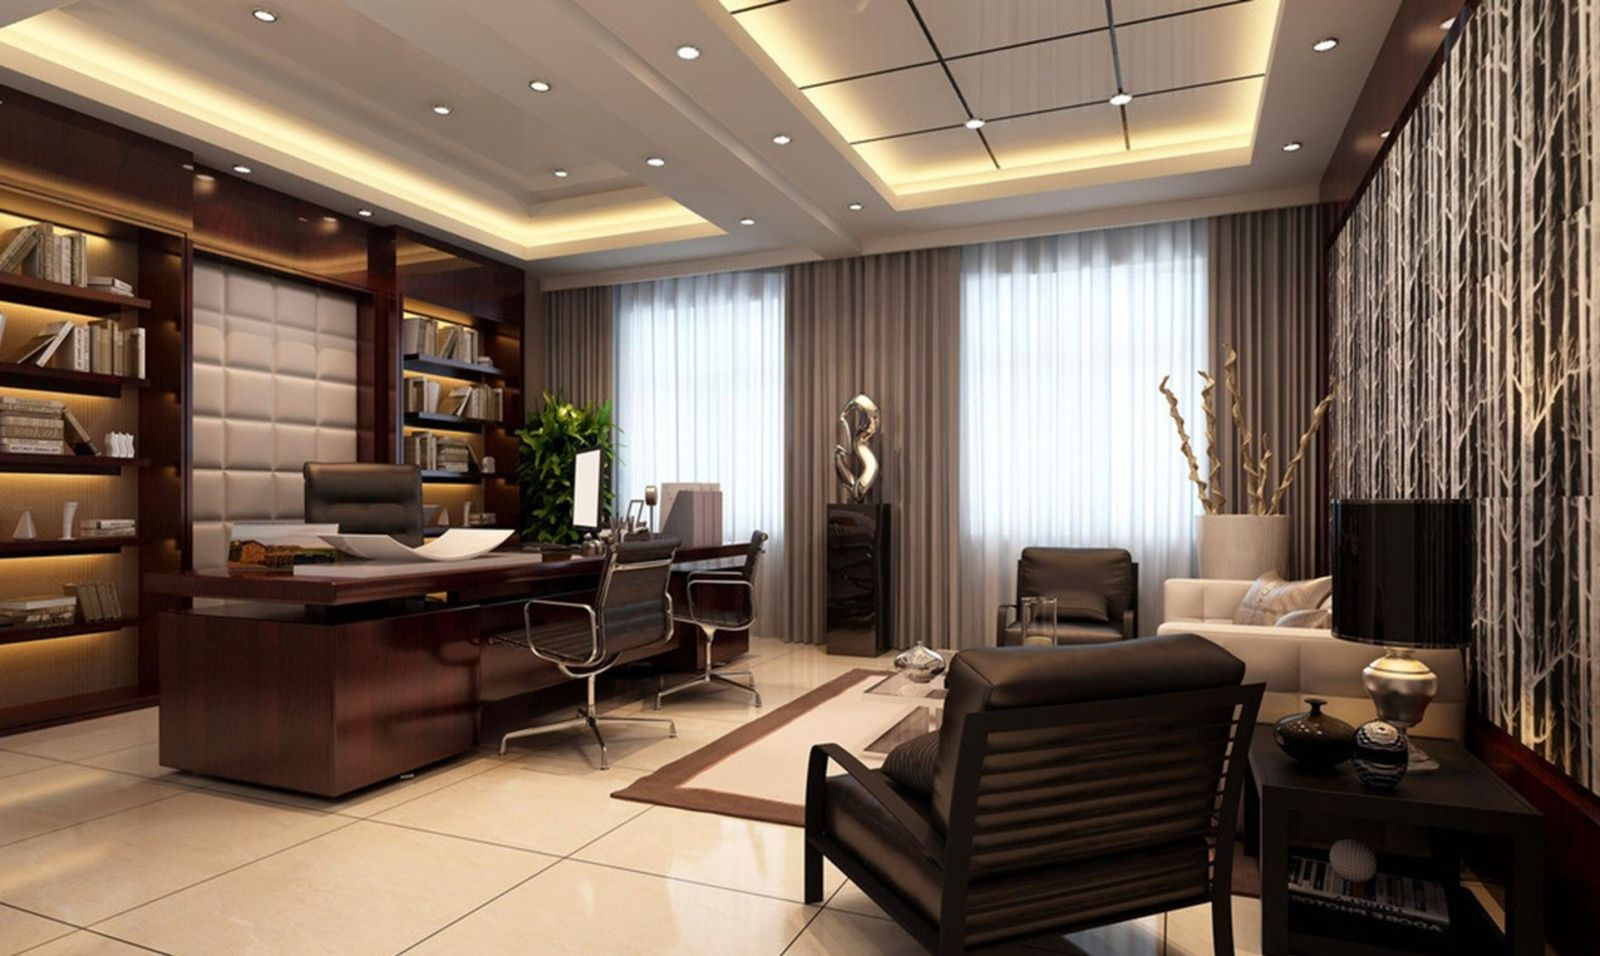 Modern ceo office interior design with executive office for Office room interior design ideas